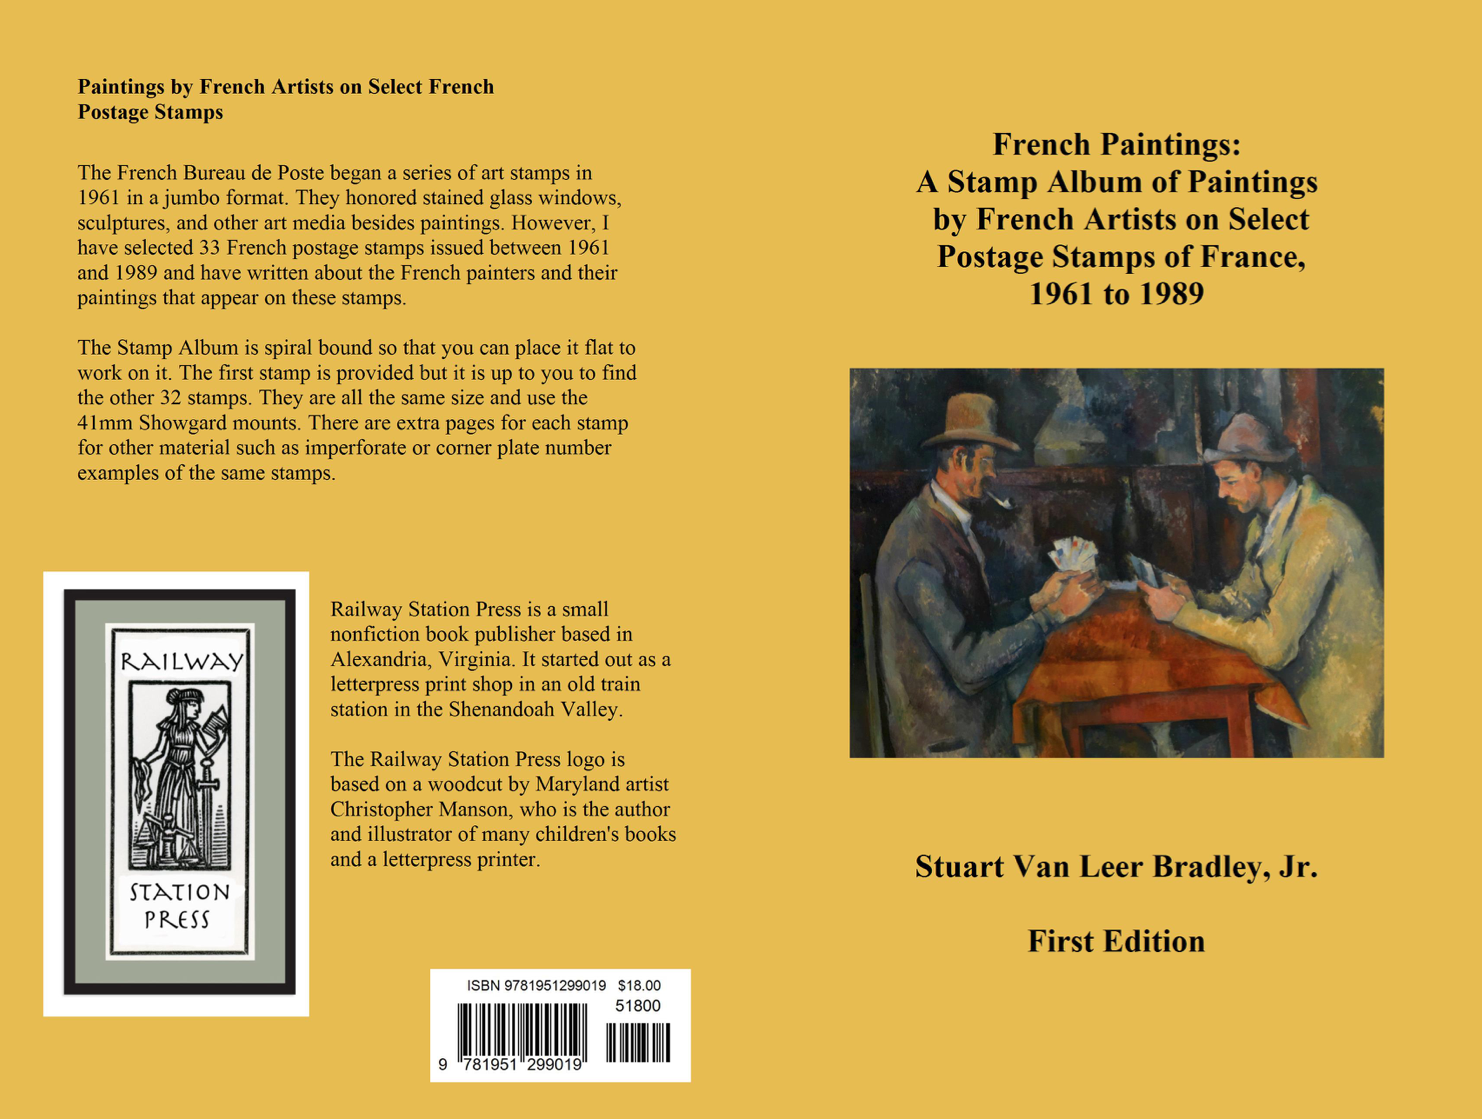 France $18 Cover